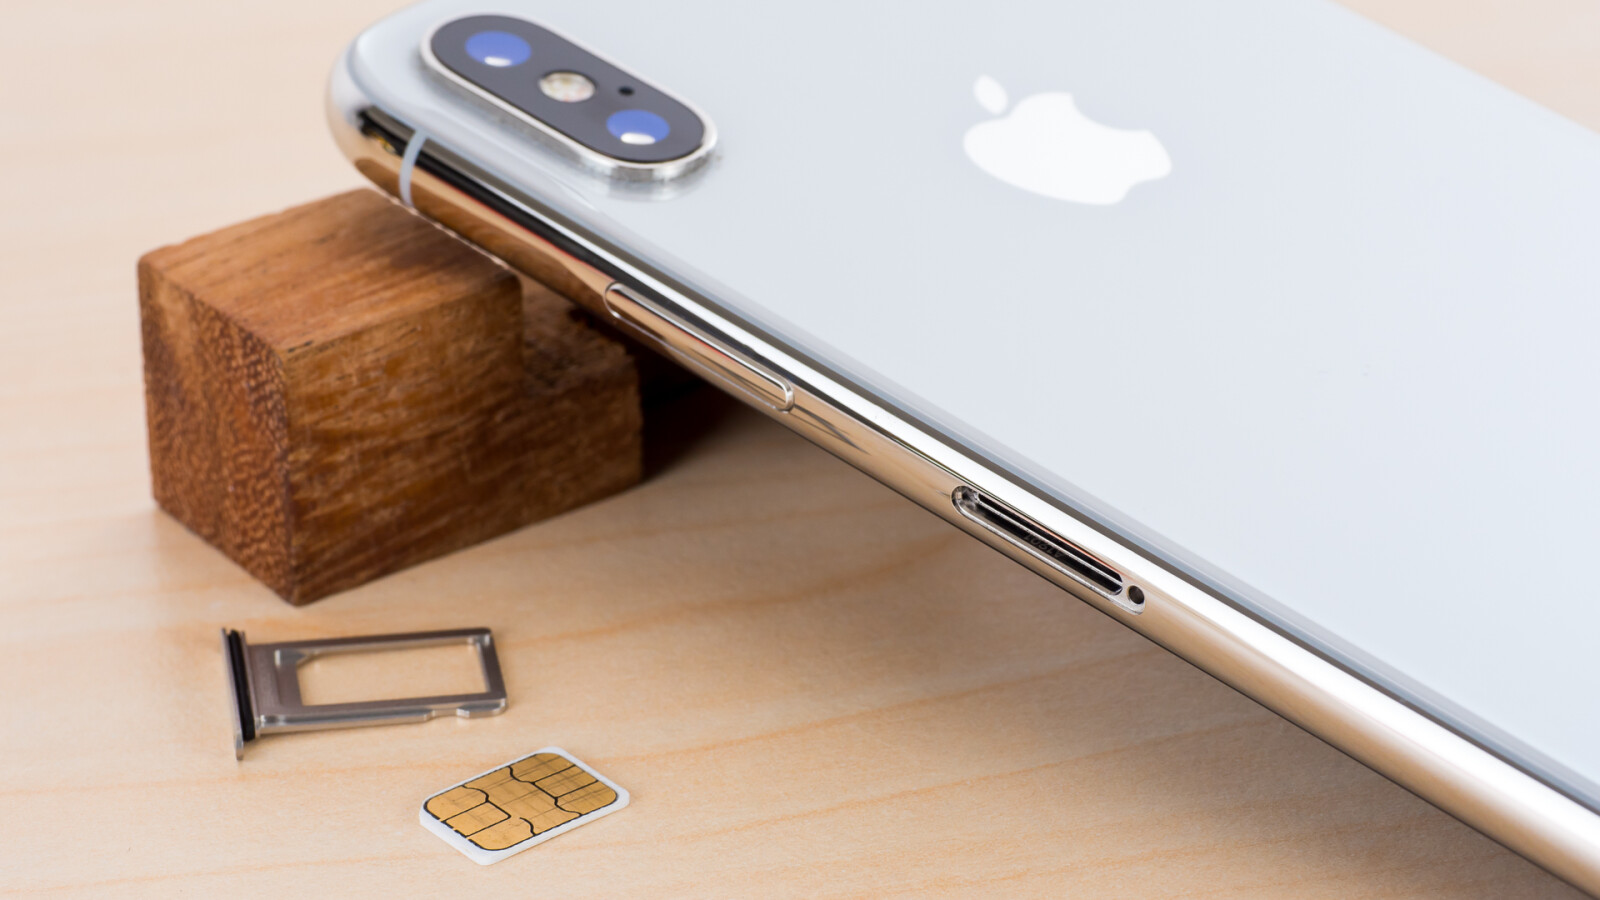 Sim Karte Format.Insert Iphone X Sim Card Which Format Do I Need